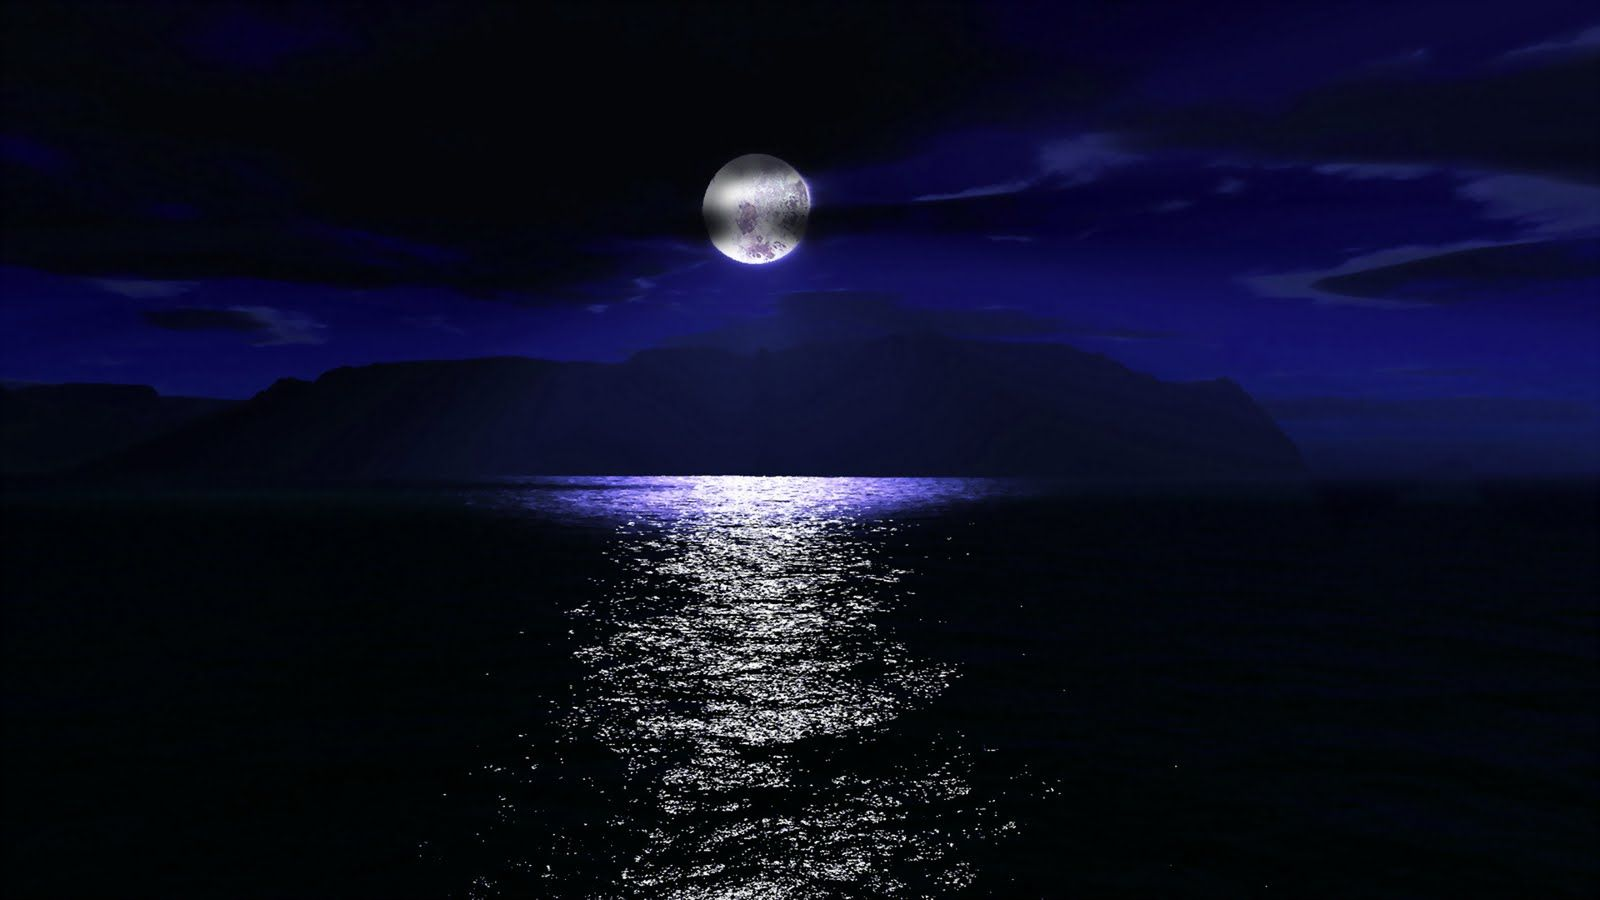 Sea Night Wallpaper For Android Anp World Desktop Hd Wallpapers